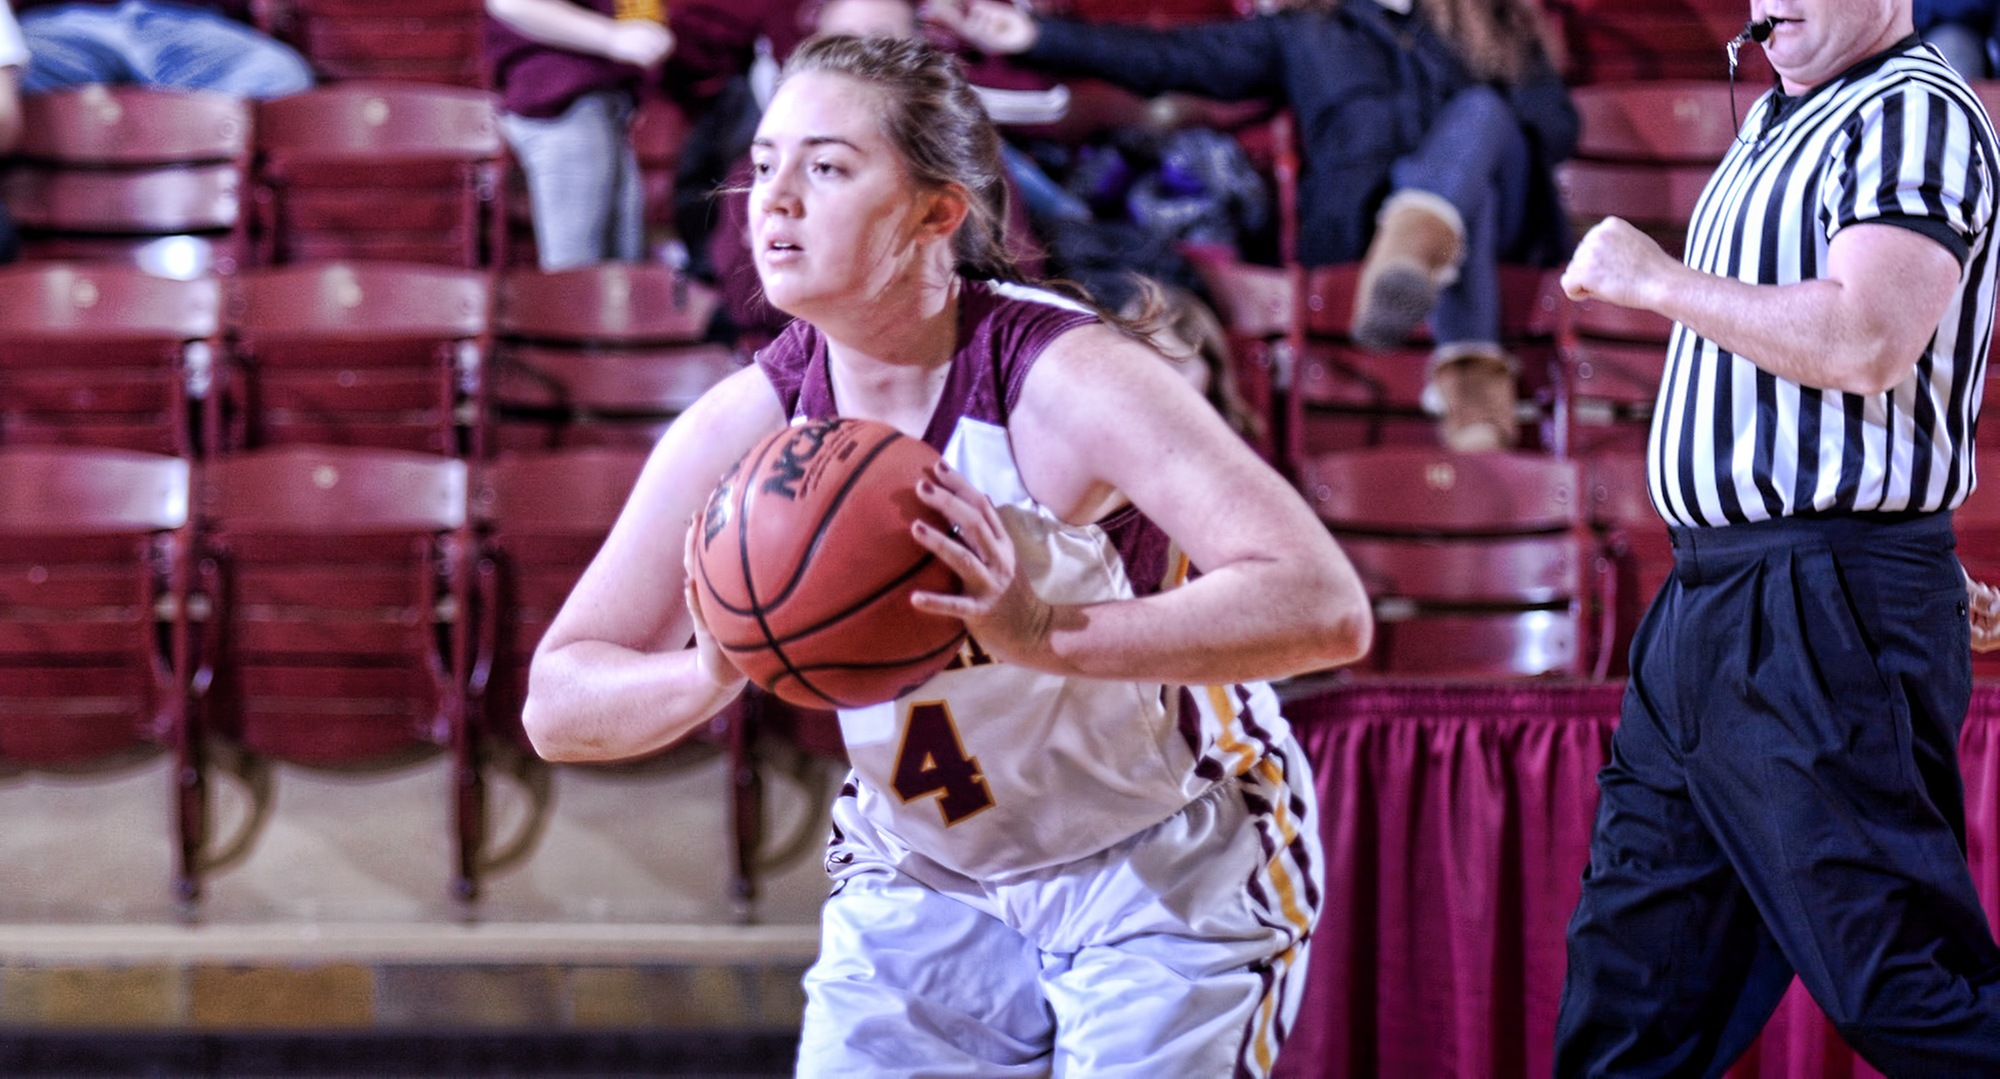 Junior Jamie Mentzer scored eight of her game-high 14 points in the fourth quarter in the Cobbers' win at Augsburg.